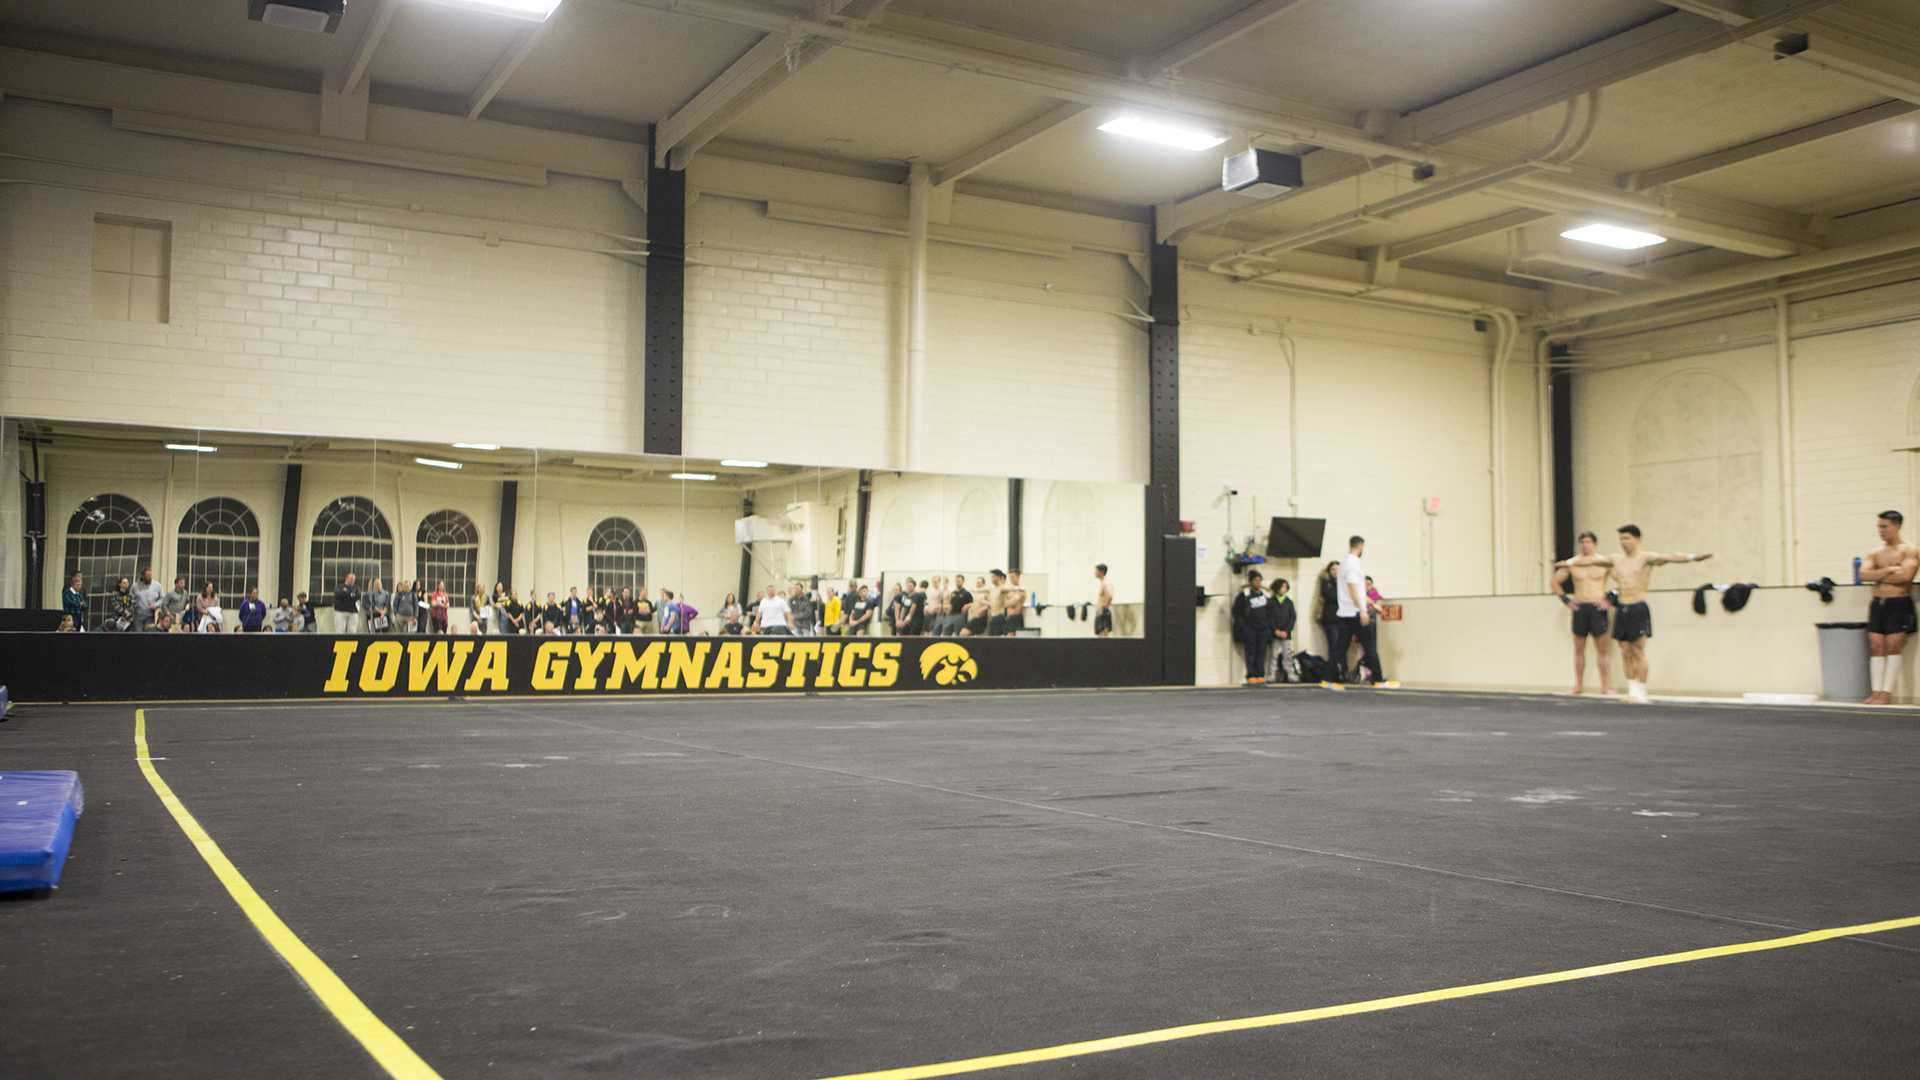 Gymnasts prepare to perform floor routines during the Black and Gold intrasquad in the Field House on Friday, Dec. 1, 2017. The Hawkeyes men's gymnastics team debuted their 2018 roster during the event. (Joseph Cress/The Daily Iowan)